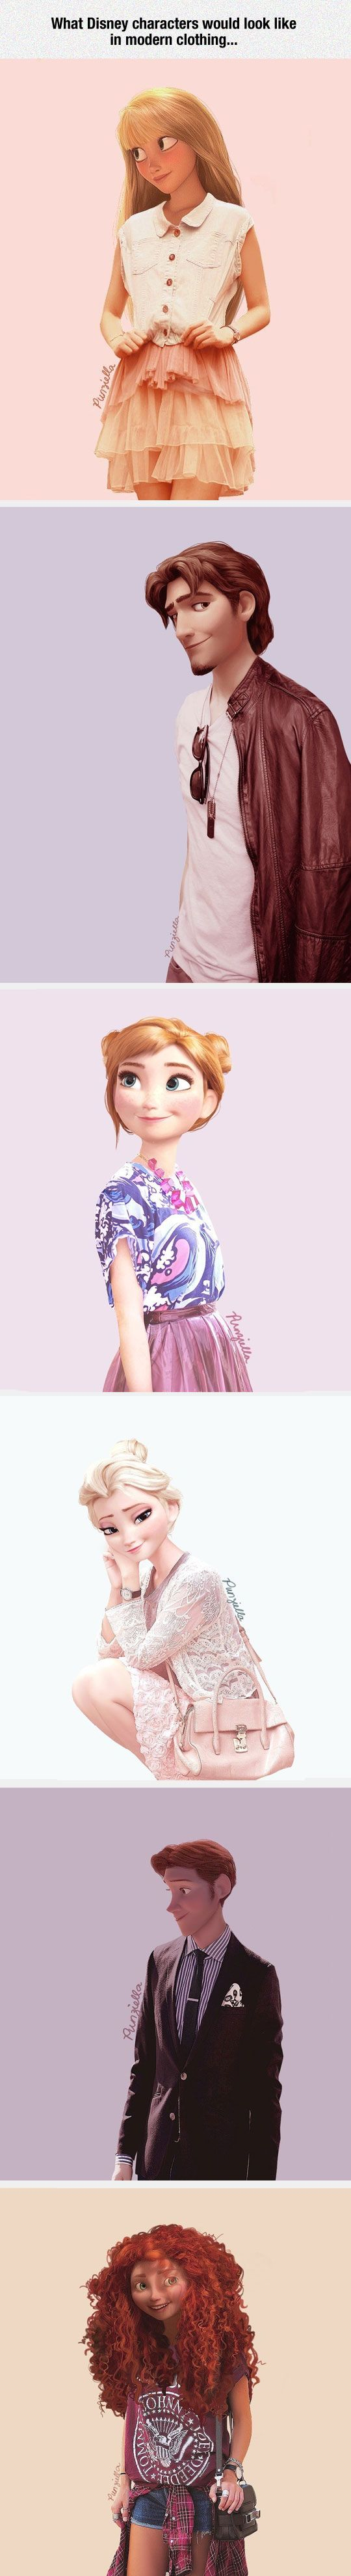 If Disney characters wore modern clothing - Cute, but if Rapunzel had bangs, wouldn't they have turned brown?